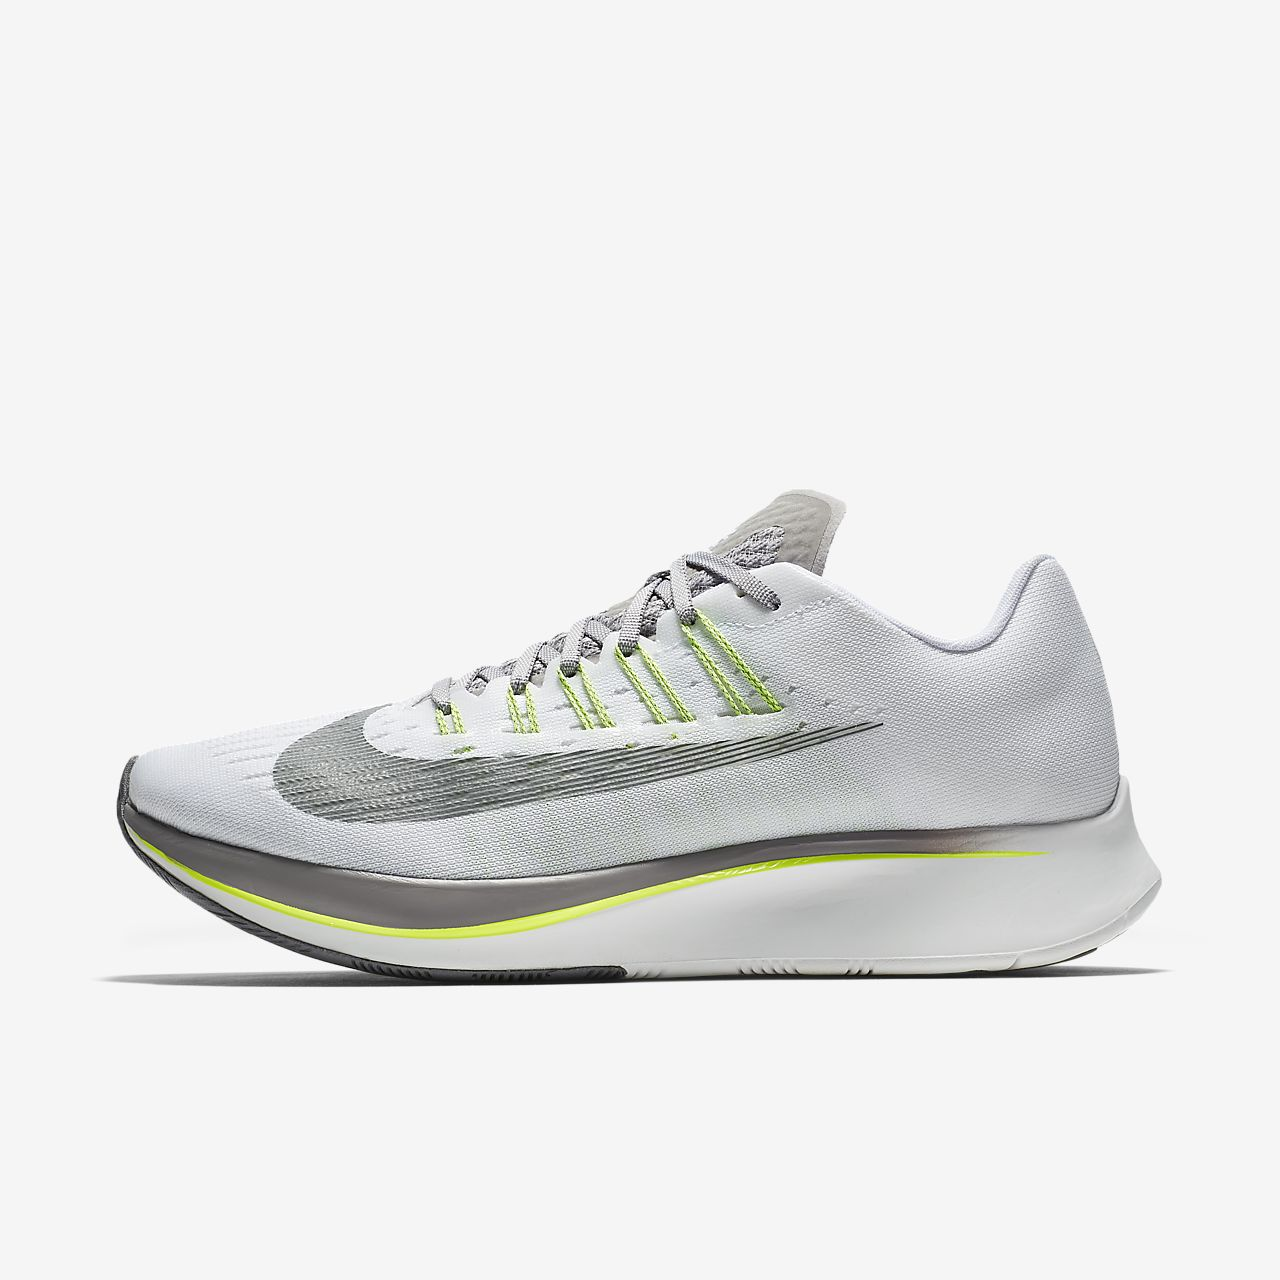 6c17c5ee7d191 Nike Zoom Fly Men s Running Shoe. Nike.com